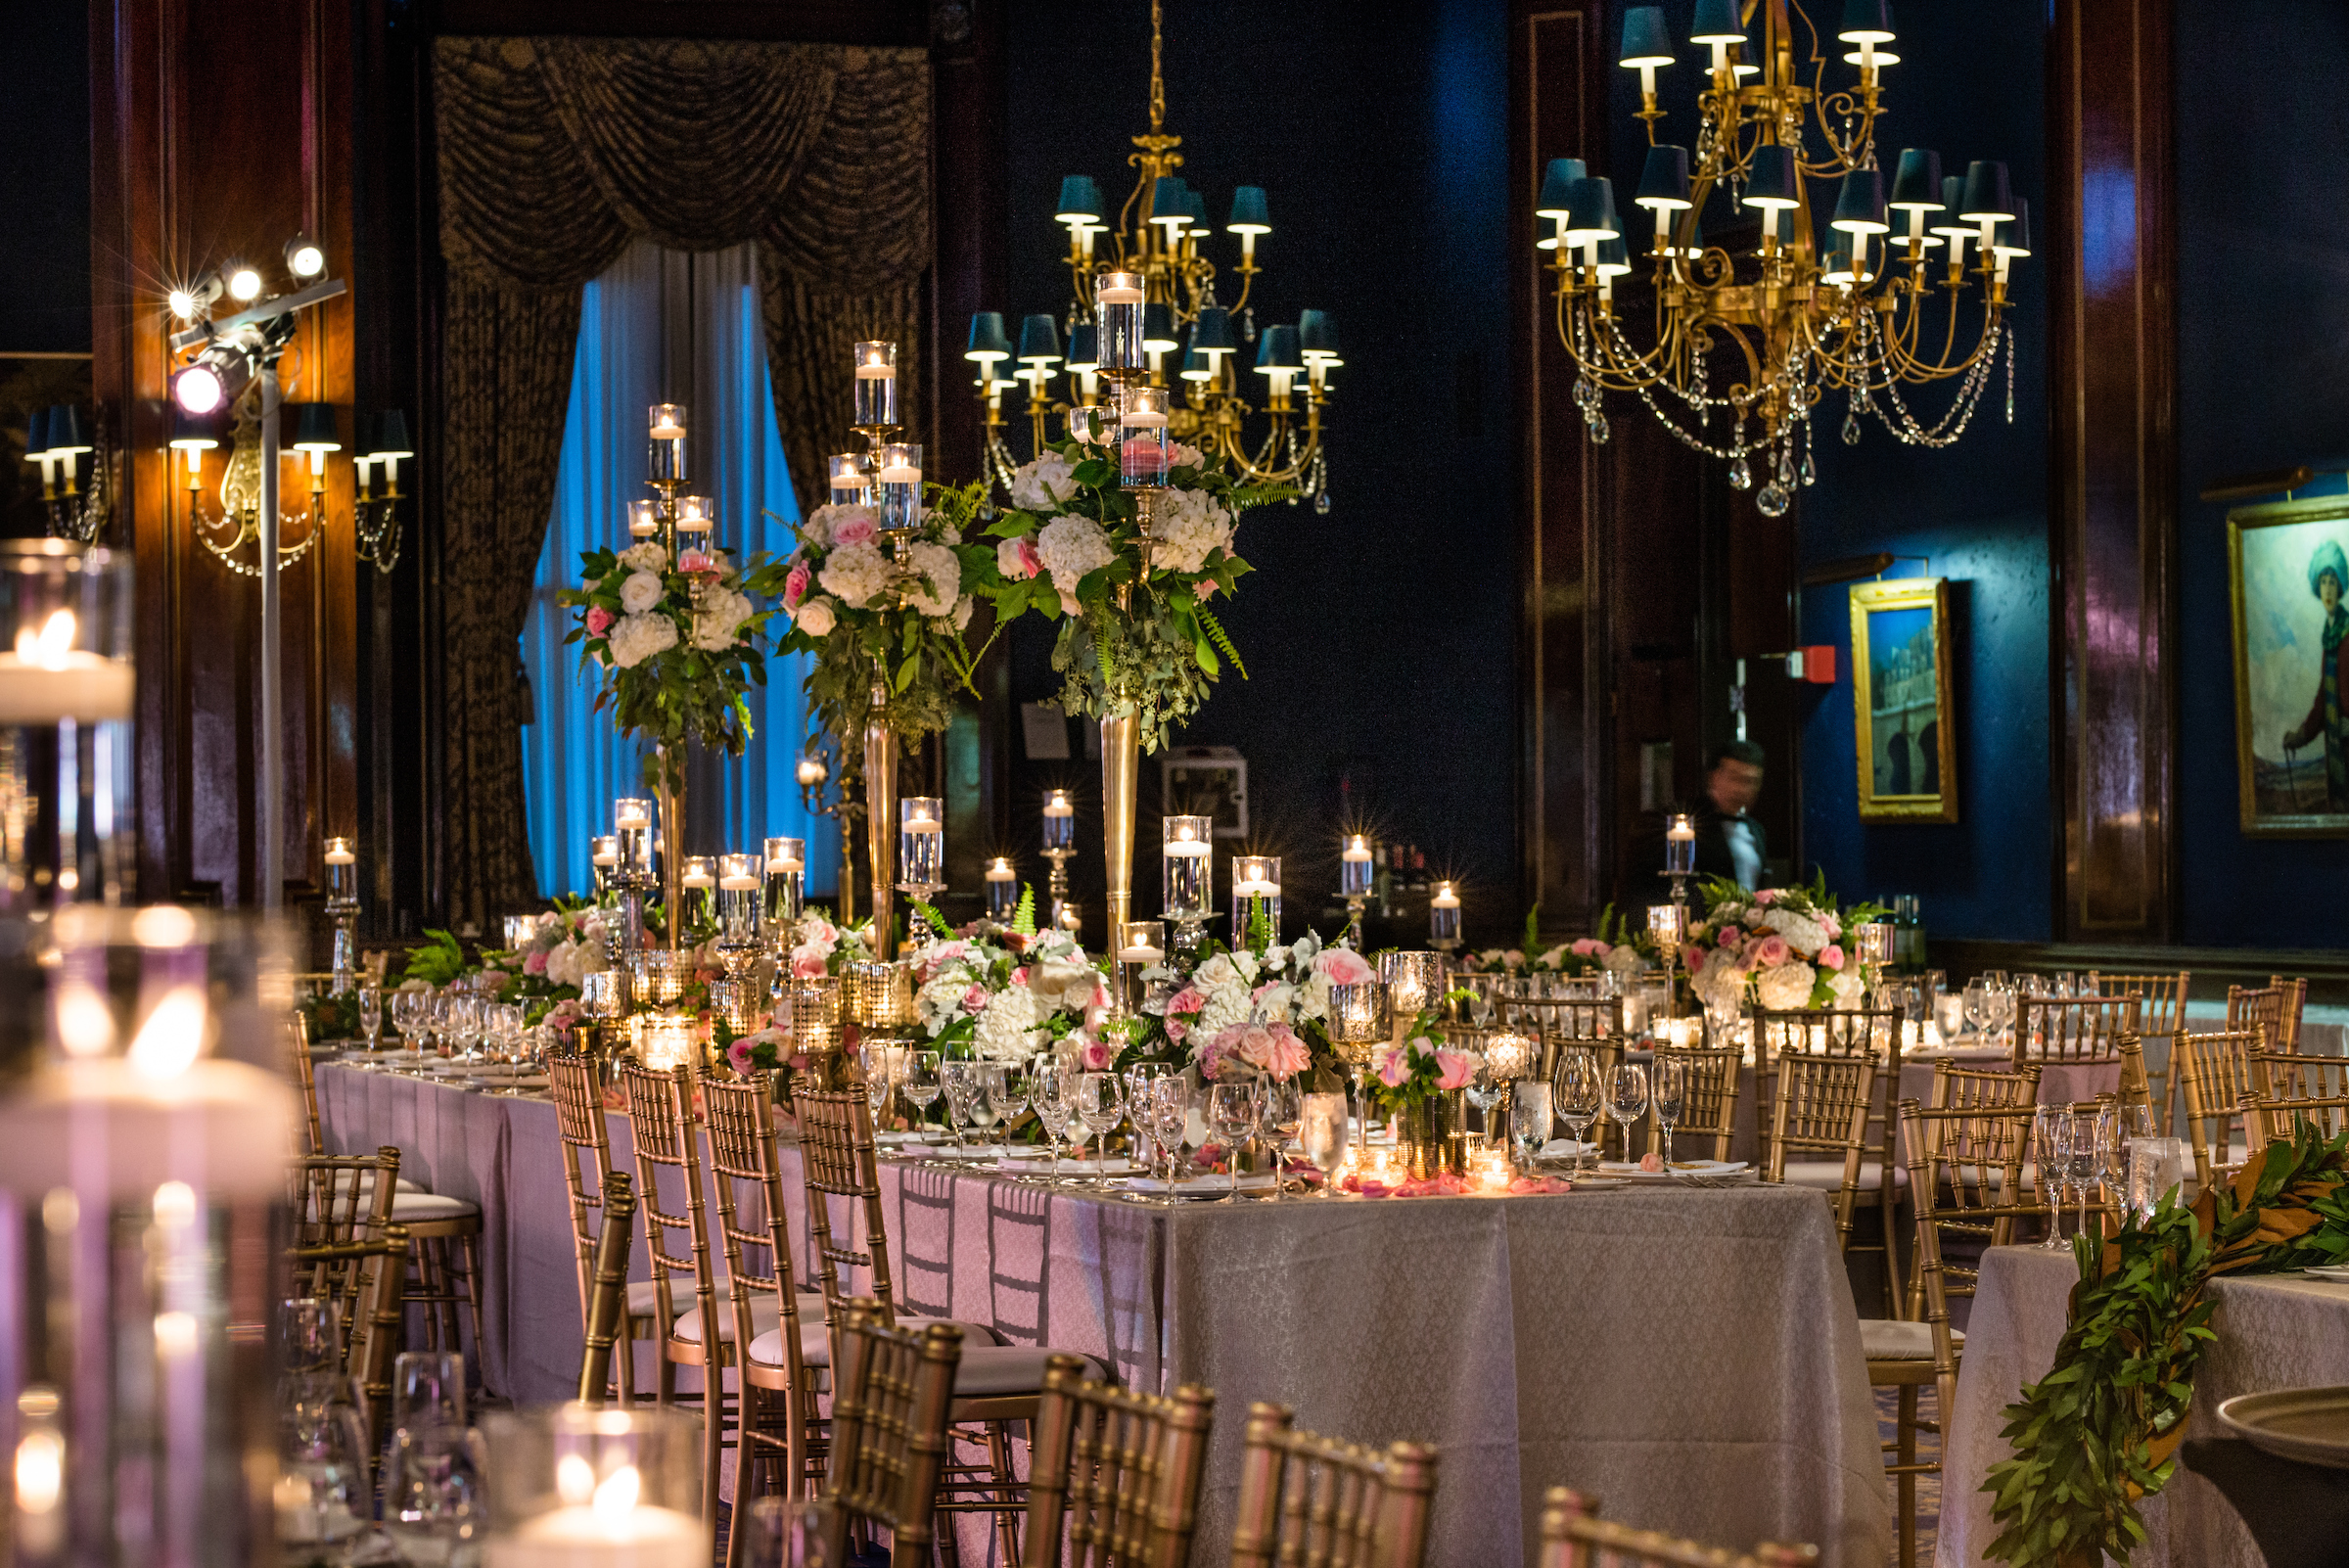 Grand Wedding Featuring Dramatic Decor - Shannon Gail Events